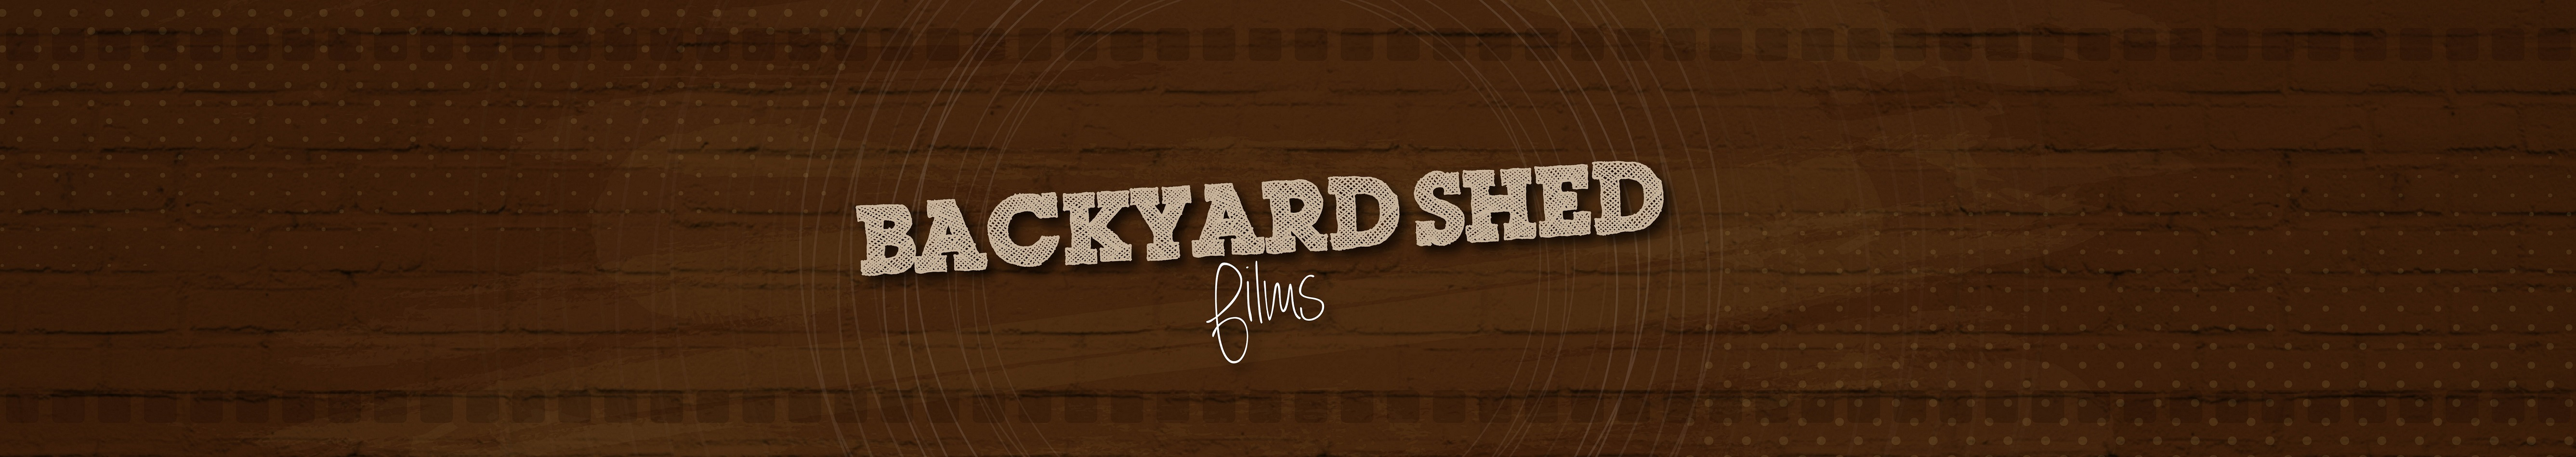 Blog Right Sidebar | Backyard Shed Films